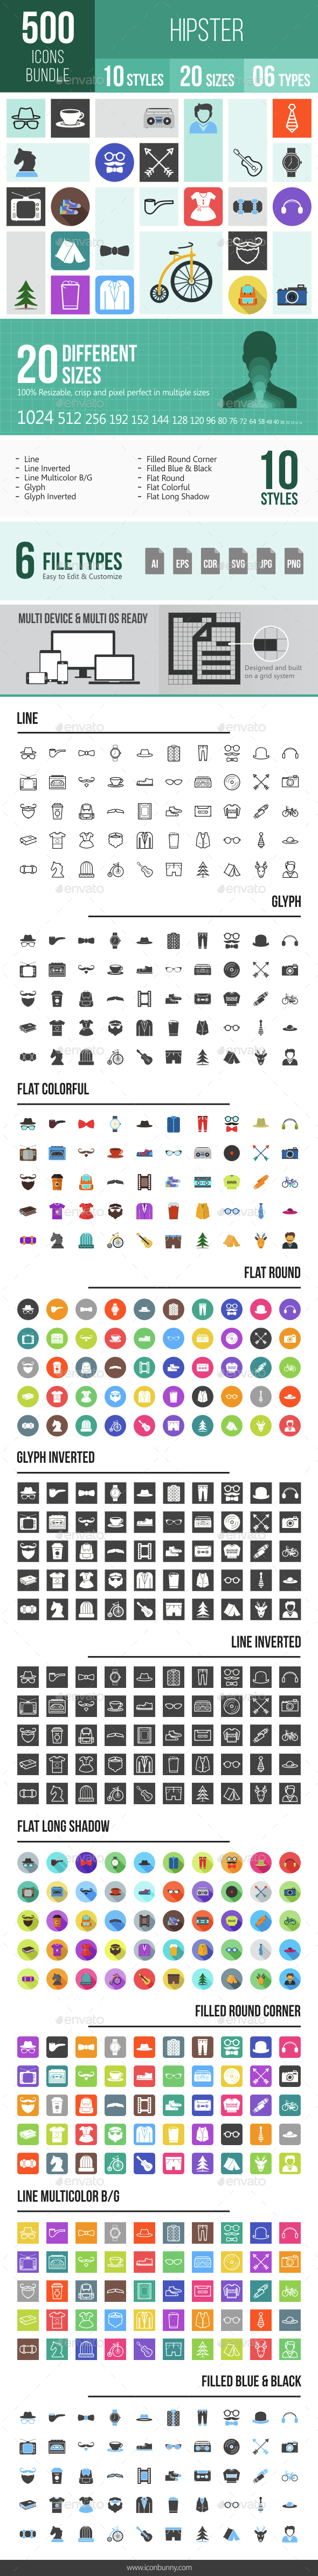 500 Hipster Icons Bundle - Icons